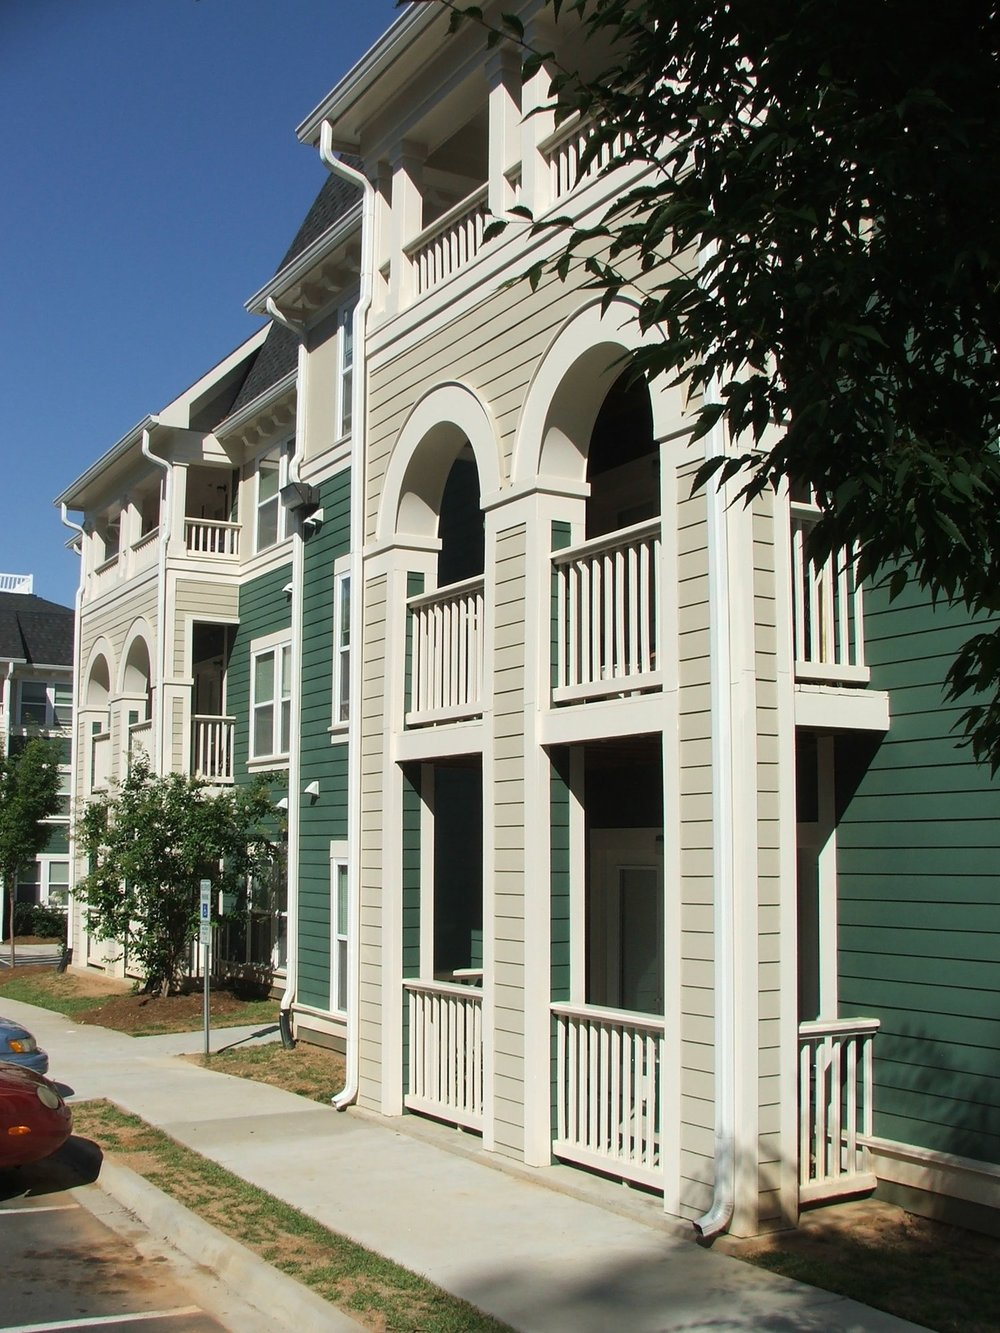 afforable-housing-charlotte-fmk-architects